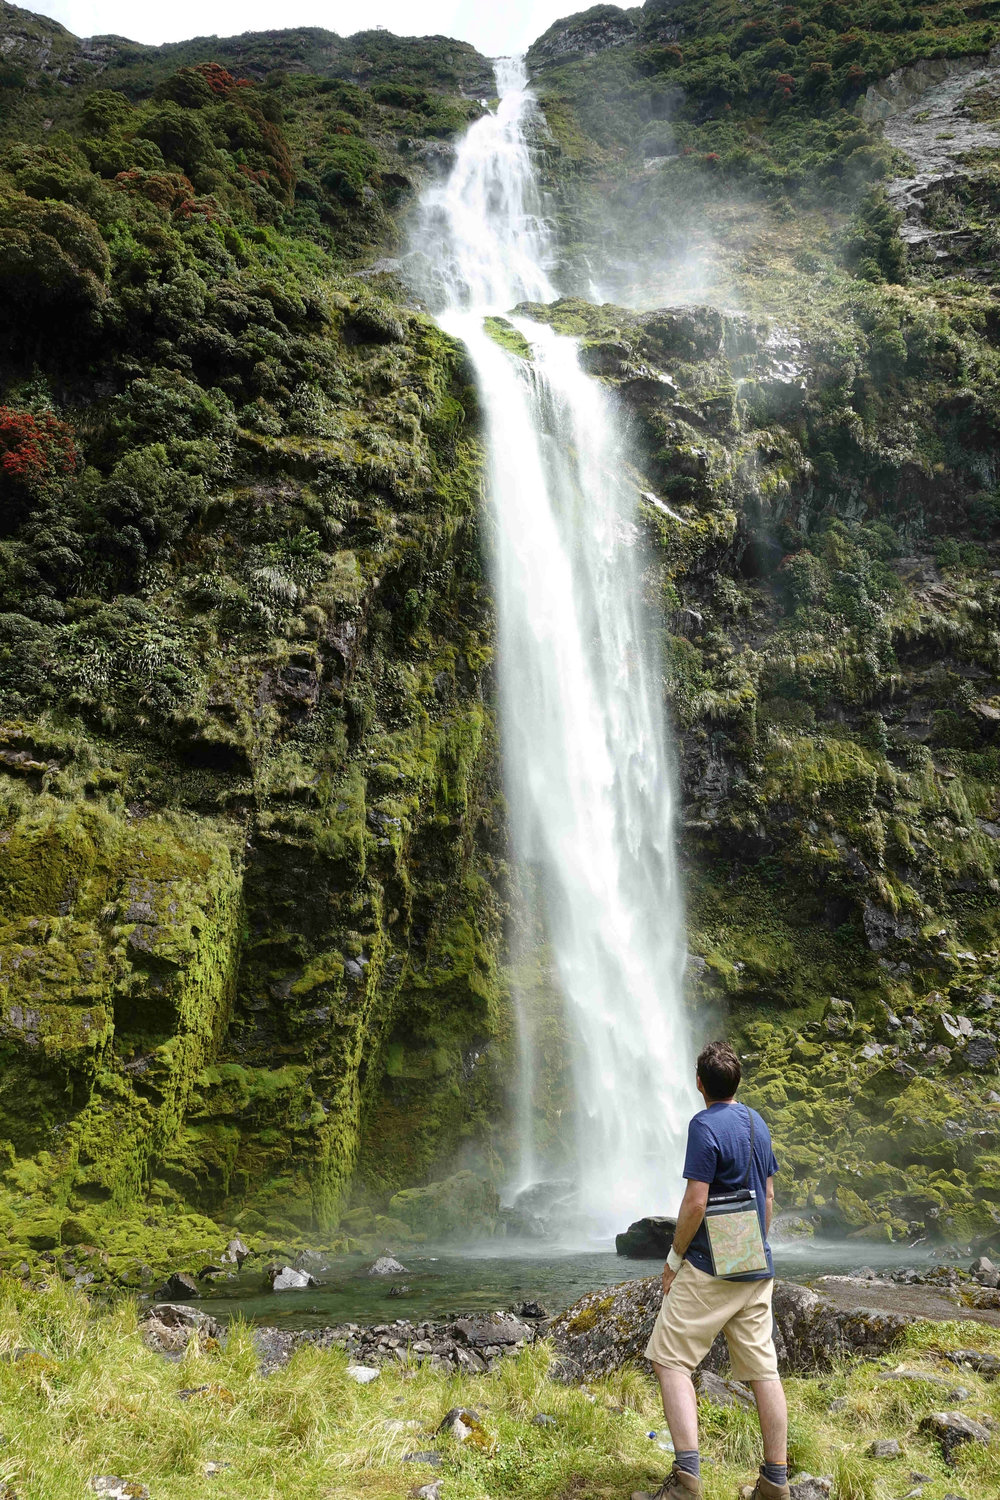 The tallest waterfall in New Zealand